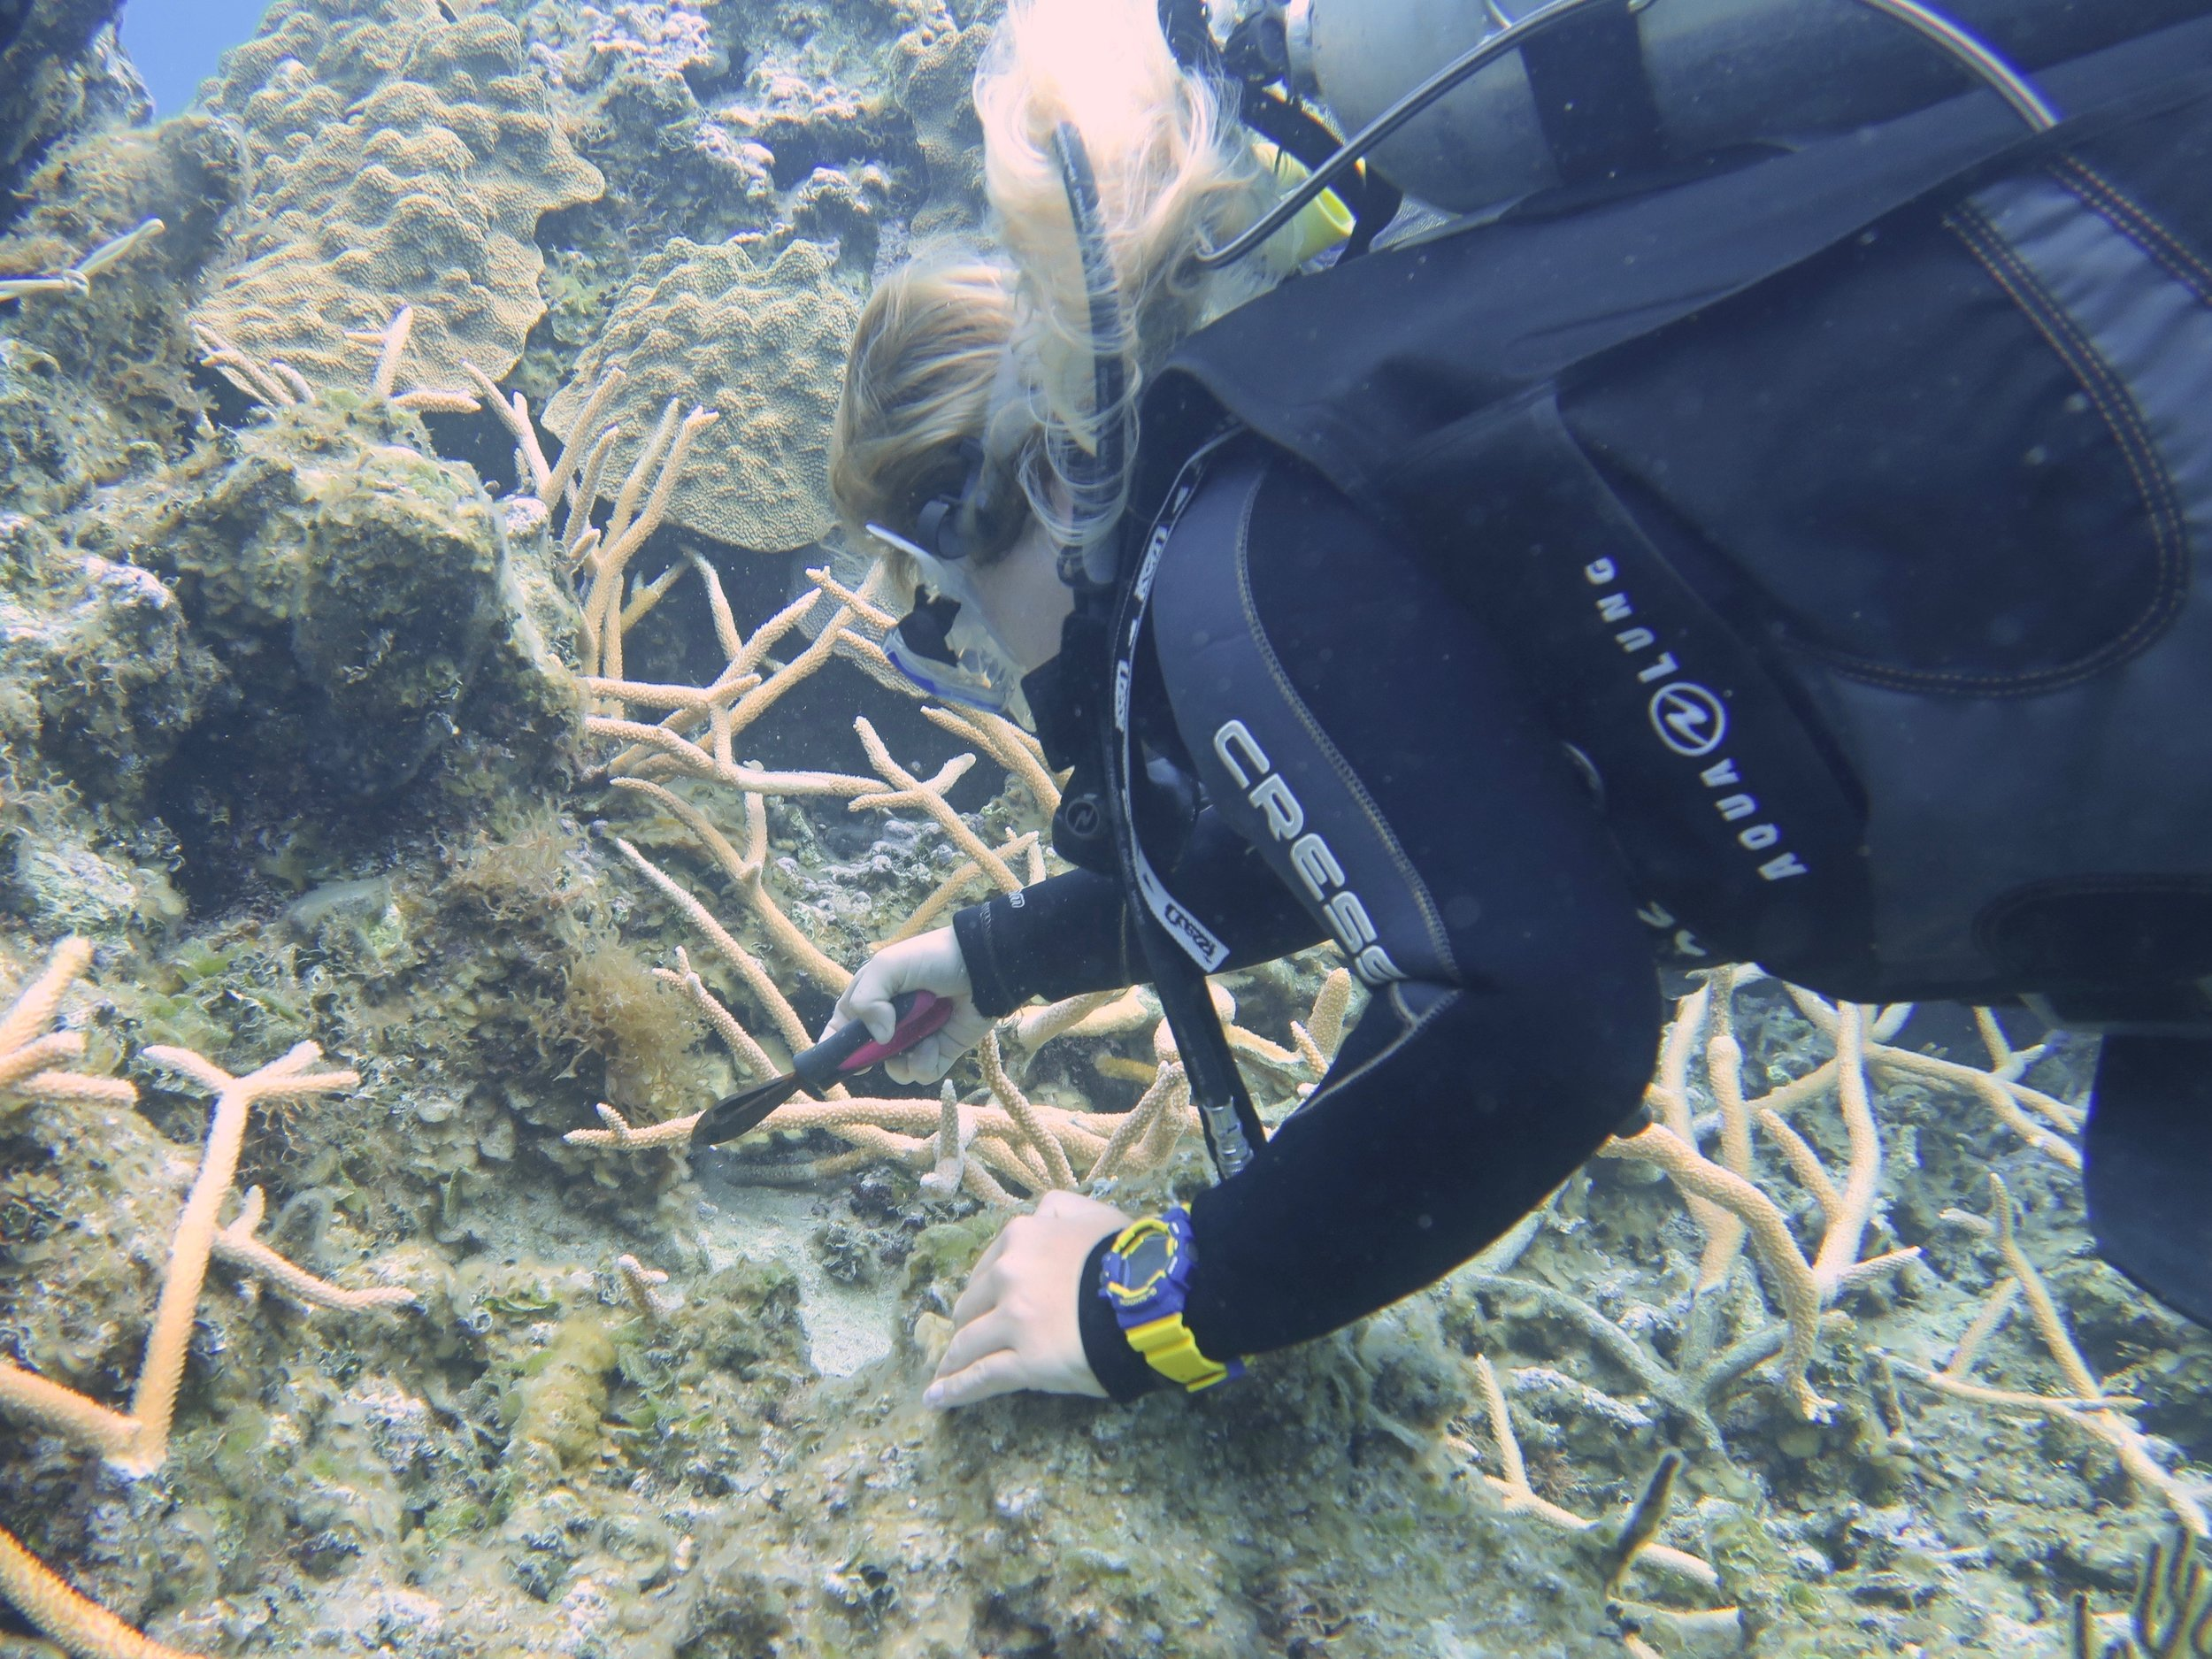 Jodie Ball, research technician, collects staghorn fragments from Bamboo reef.